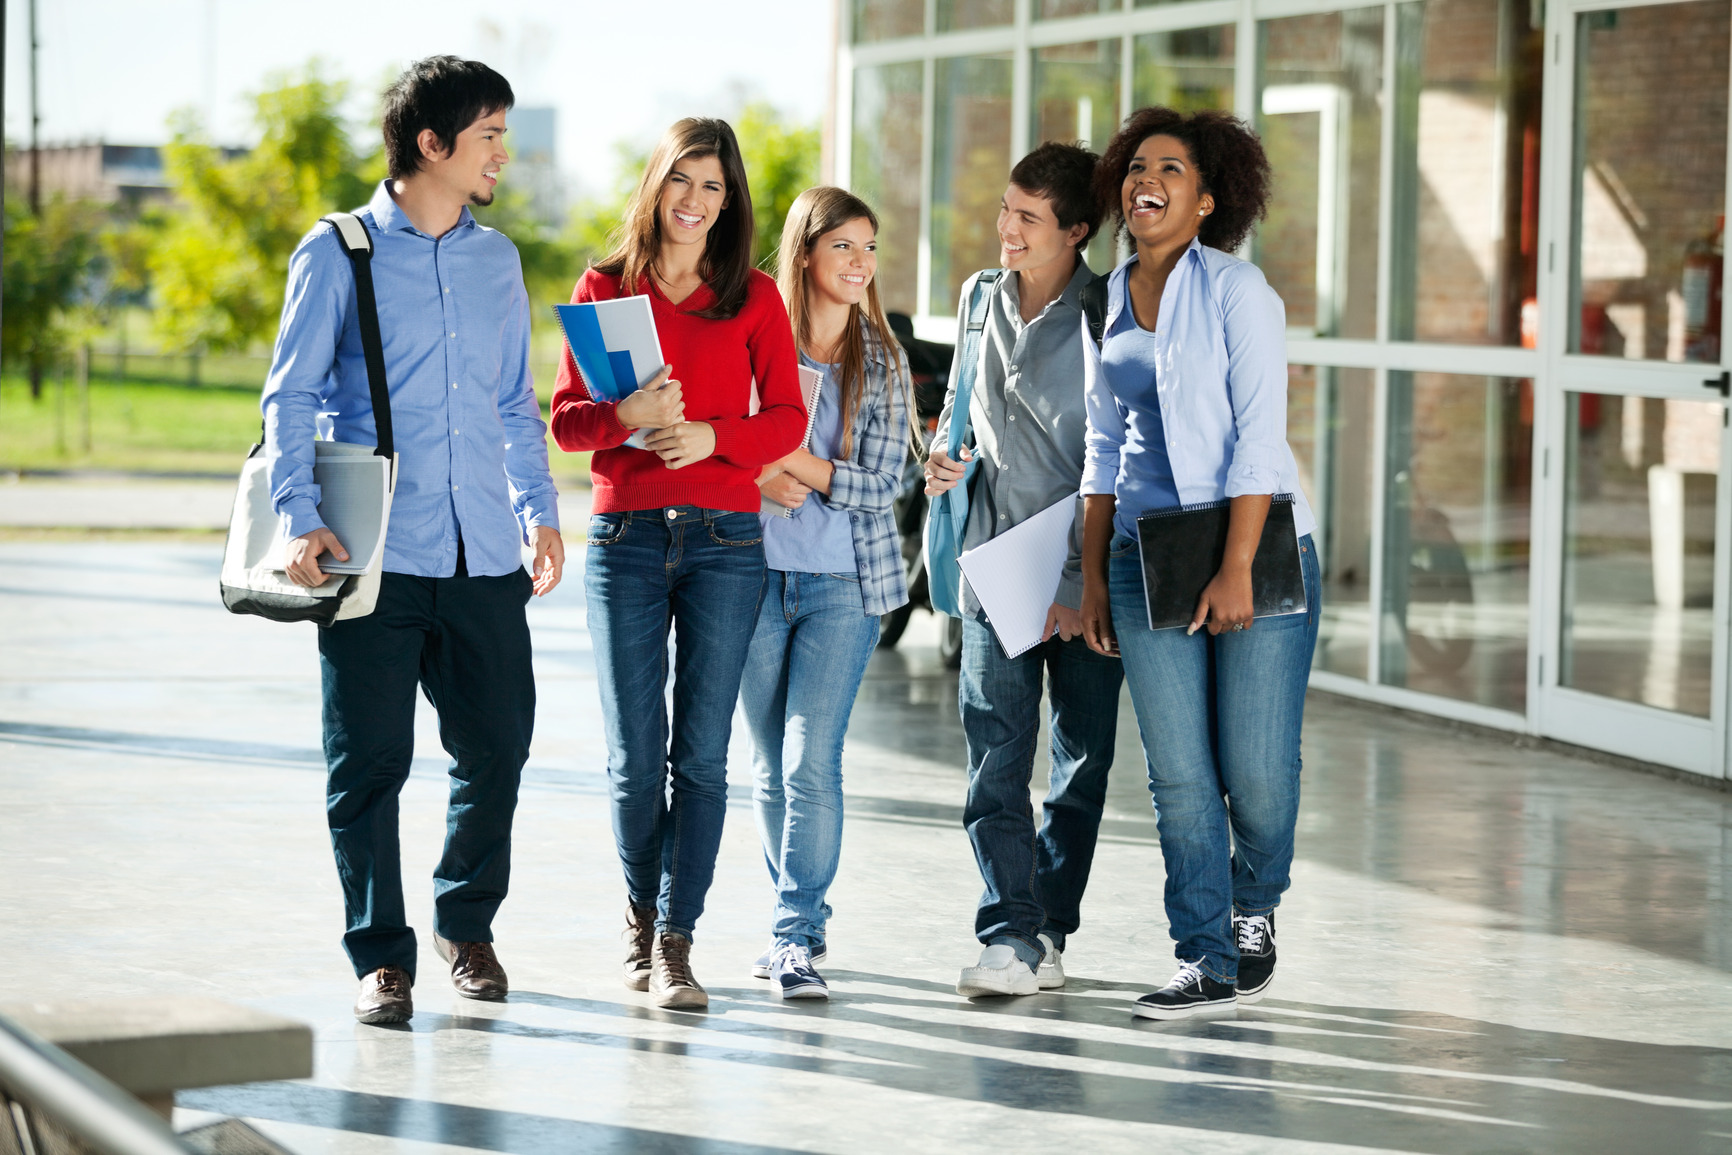 cheerful-students-walking-on-campus-m.jpg